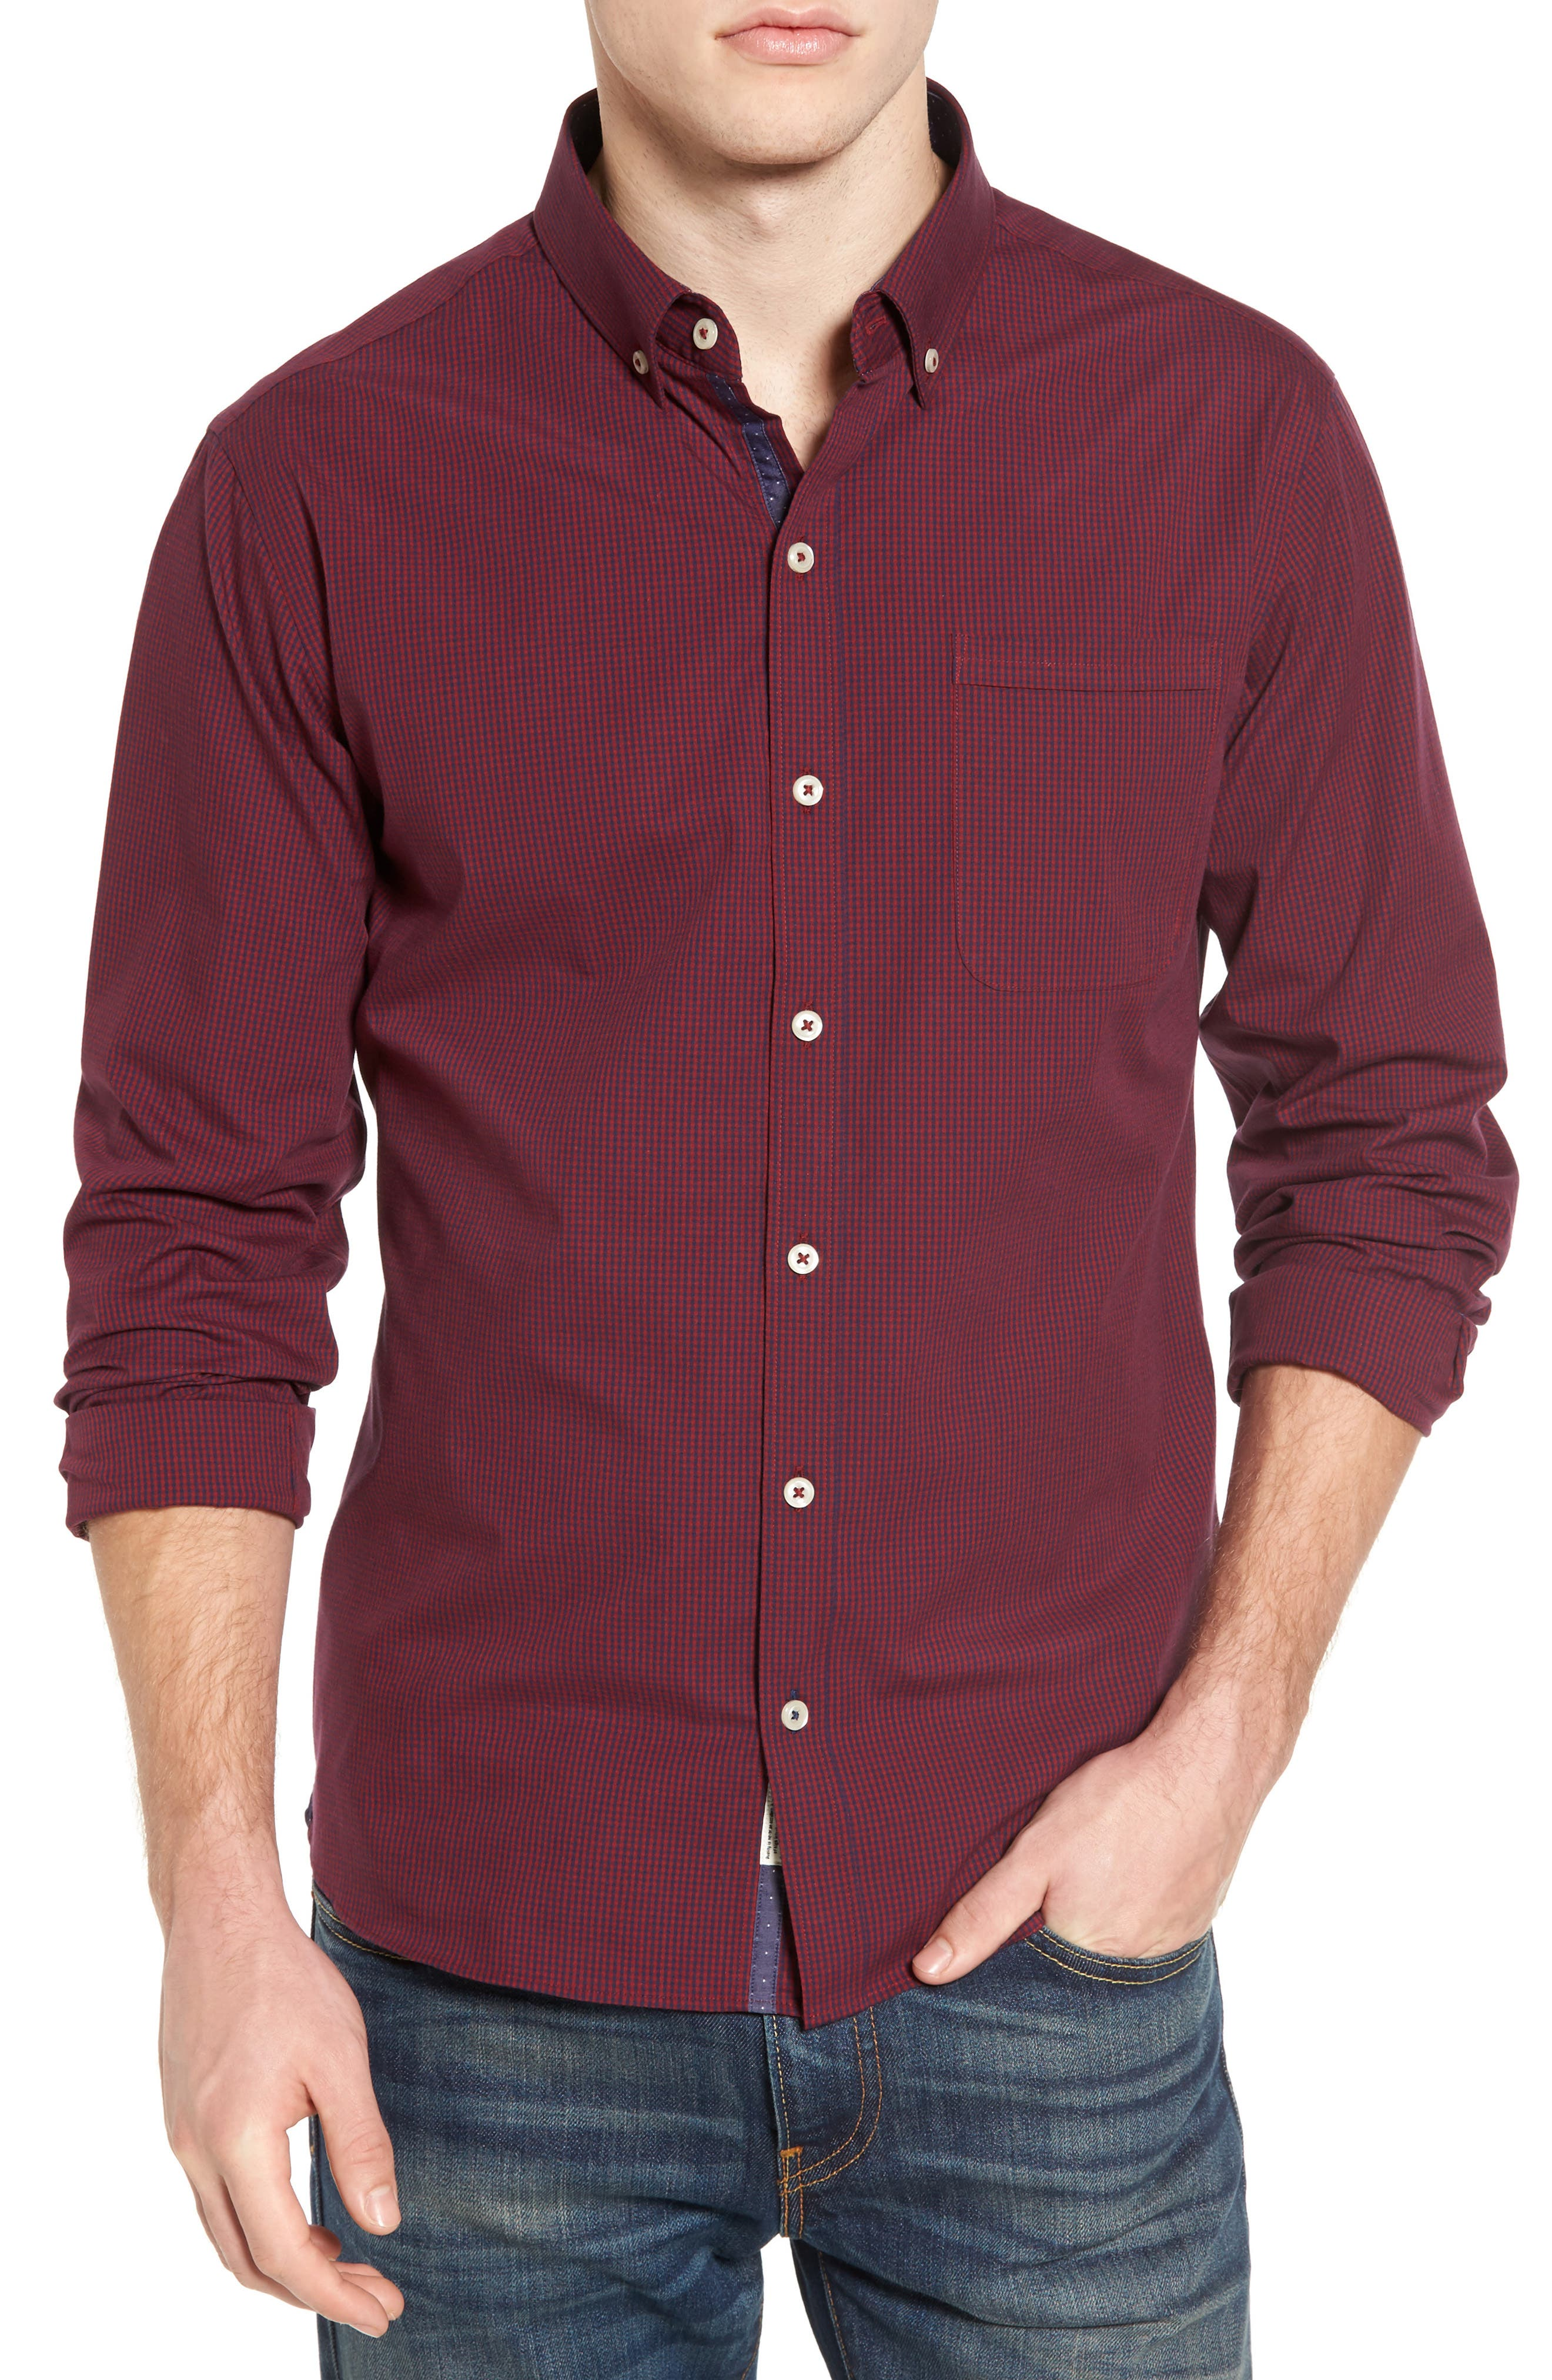 Oracle Woven Shirt,                         Main,                         color, 600